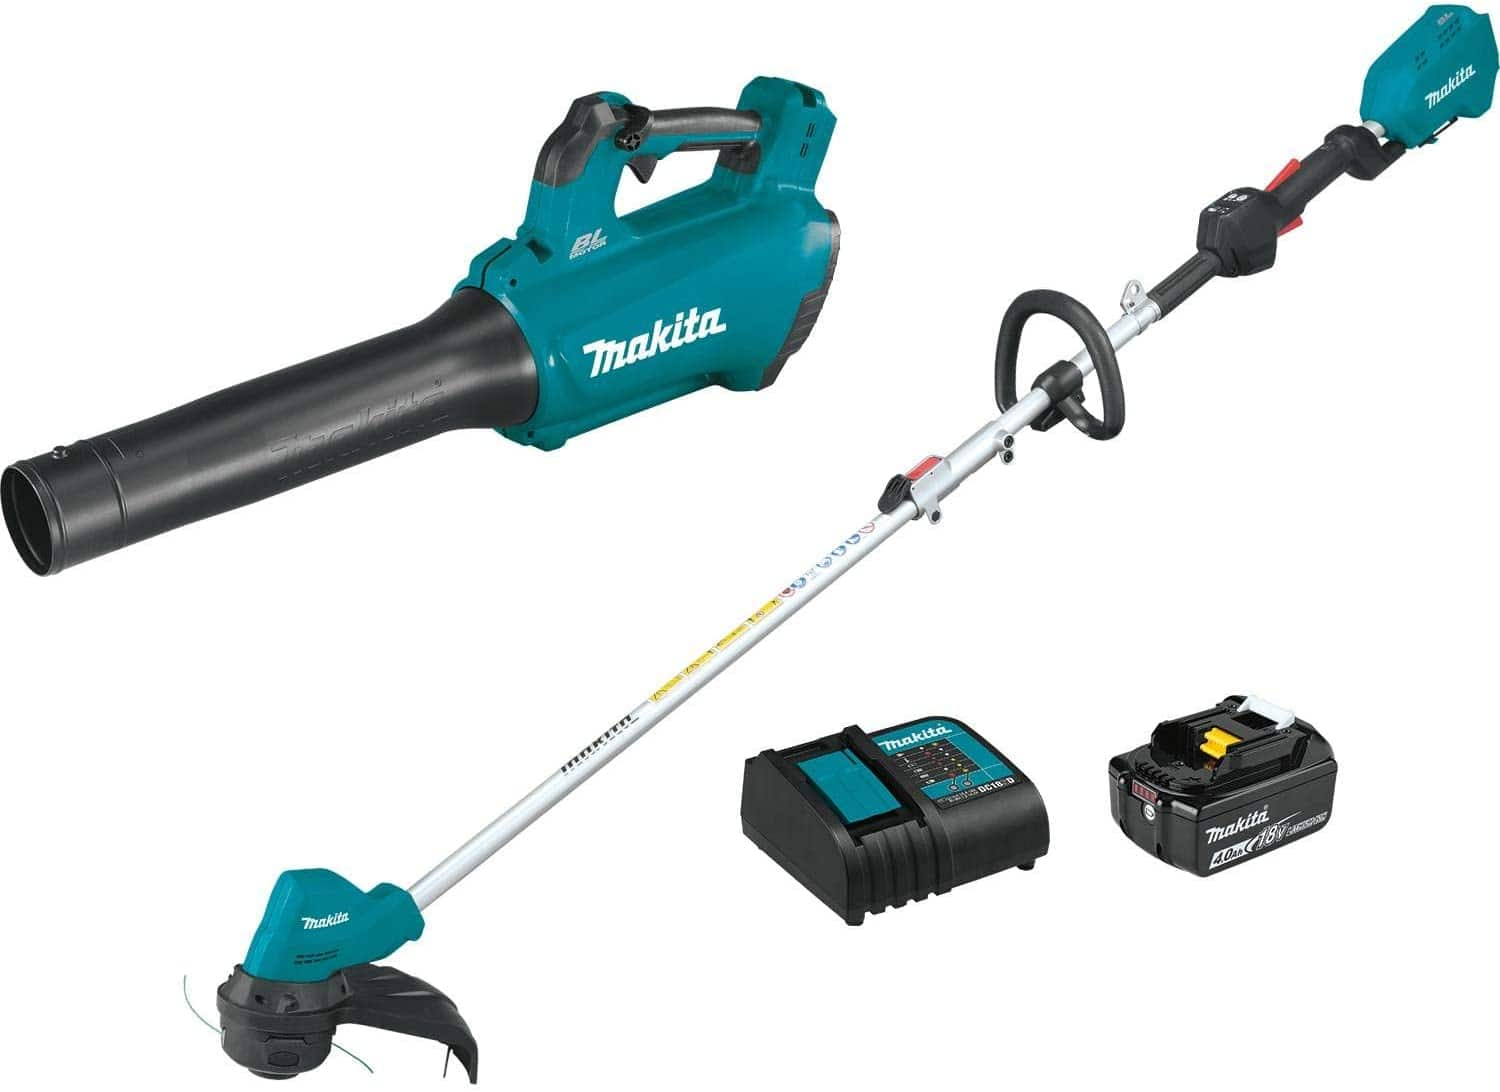 Makita 18-Volt 4.0 Ah LXT Lithium-Ion Brushless Cordless Combo Kit (2-Piece) for $249